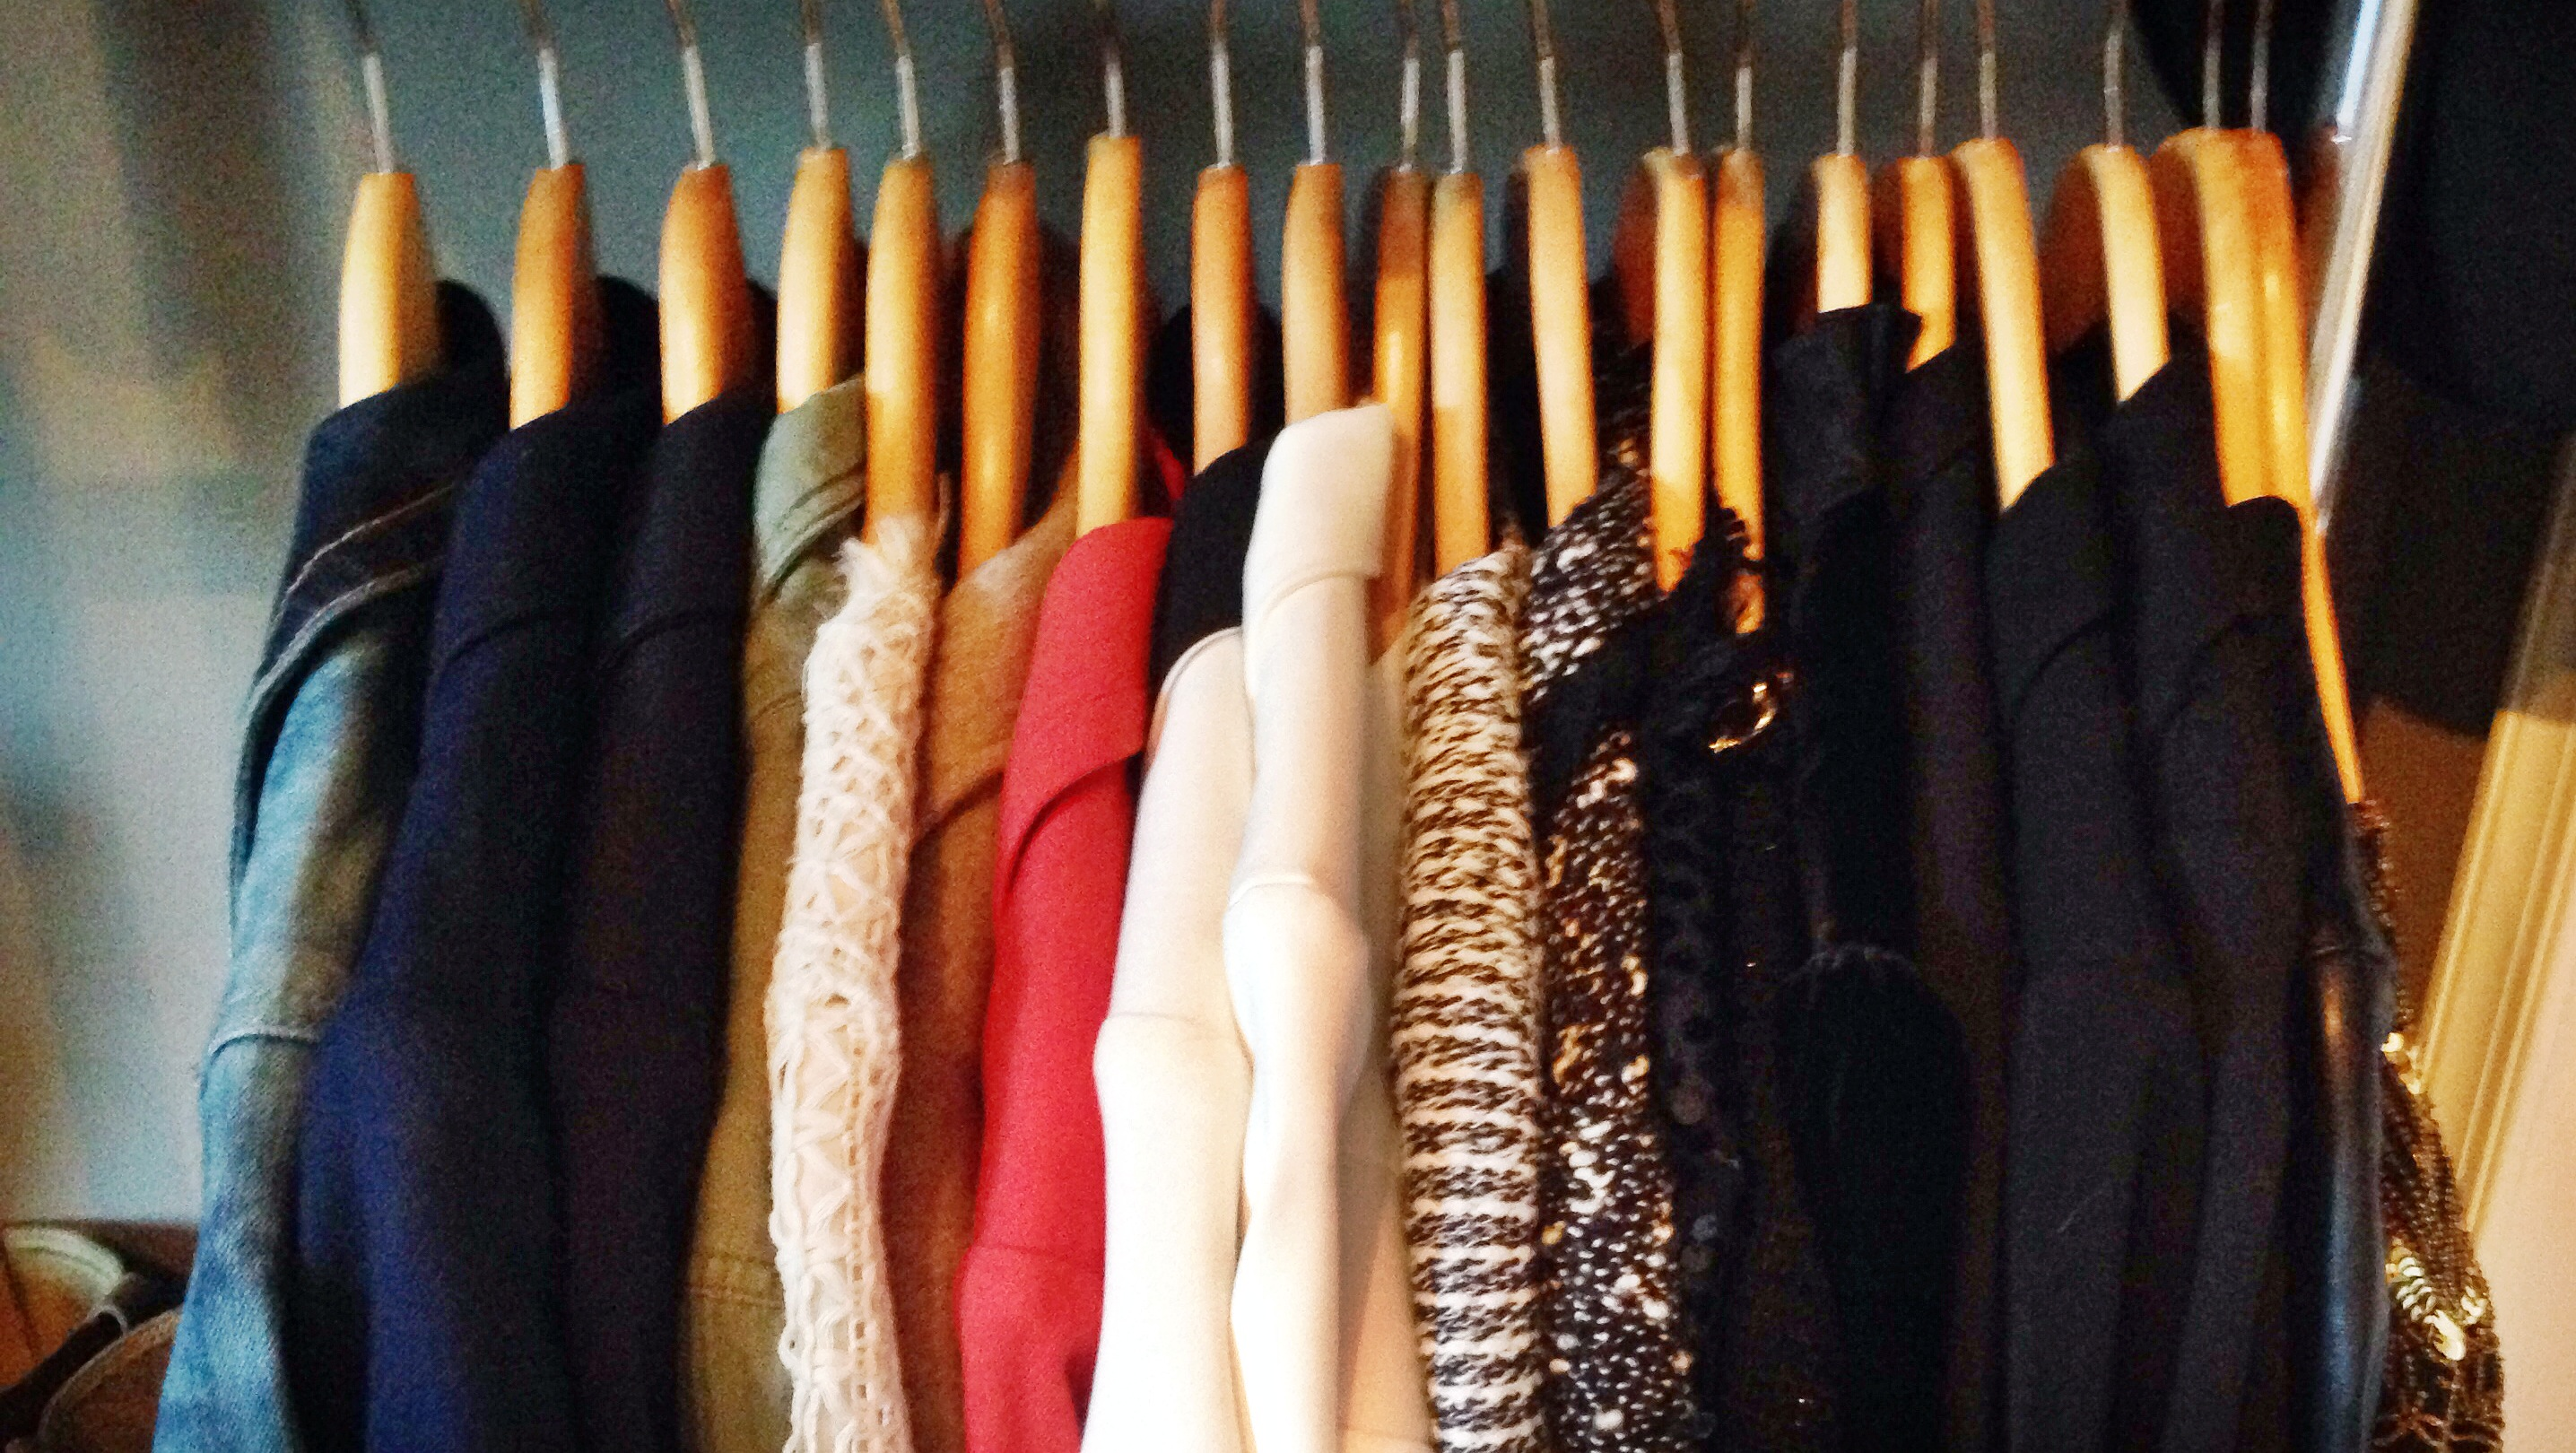 ac70777f3ea Defining Your Style – How to curate a closet full of clothes you ...